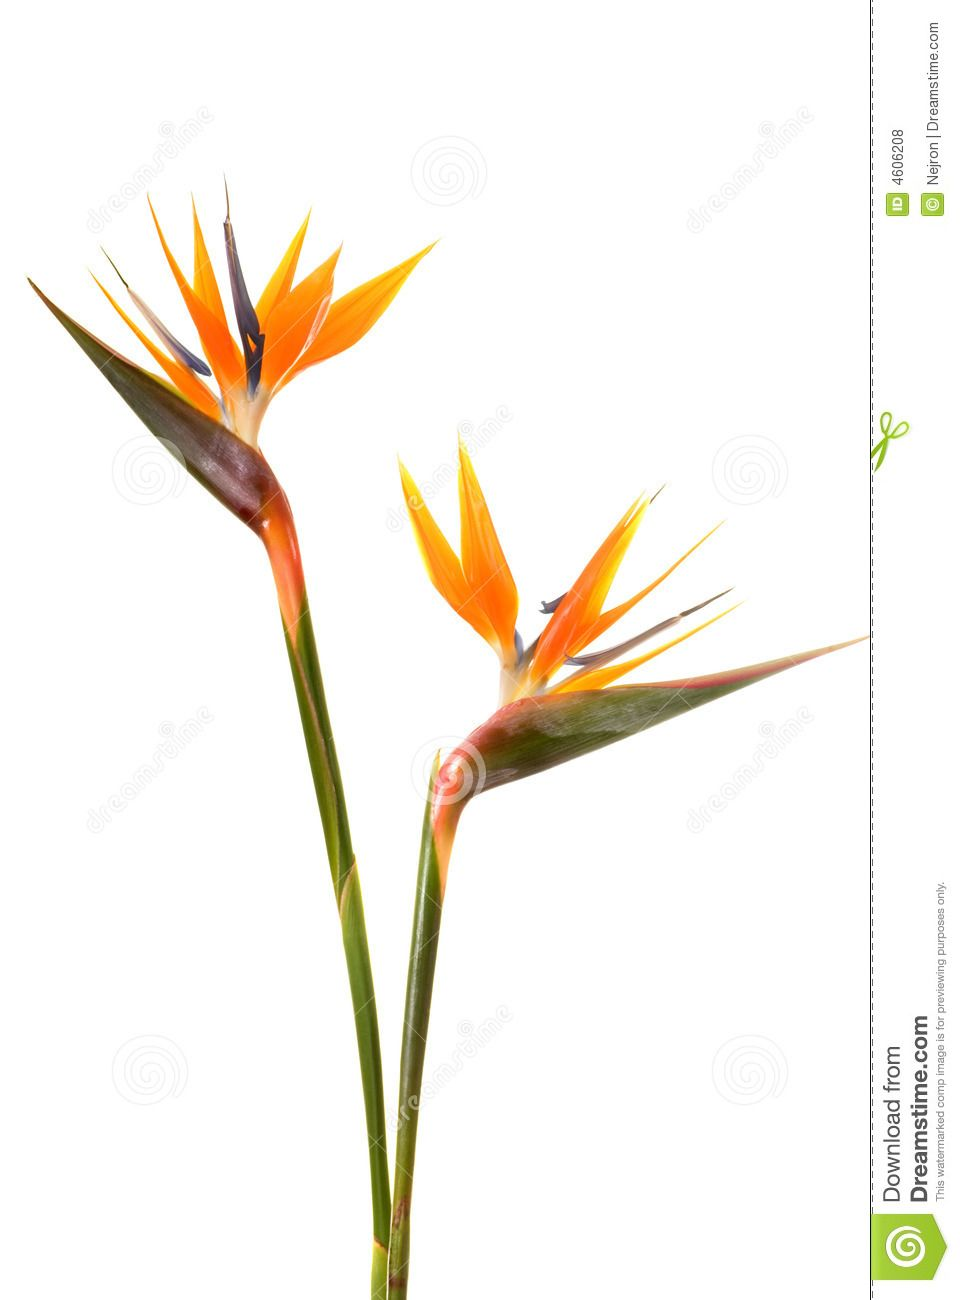 Bird Of Paradise Flower Bird Of Paradise Tattoo Birds Of Paradise Flower Birds Of Paradise